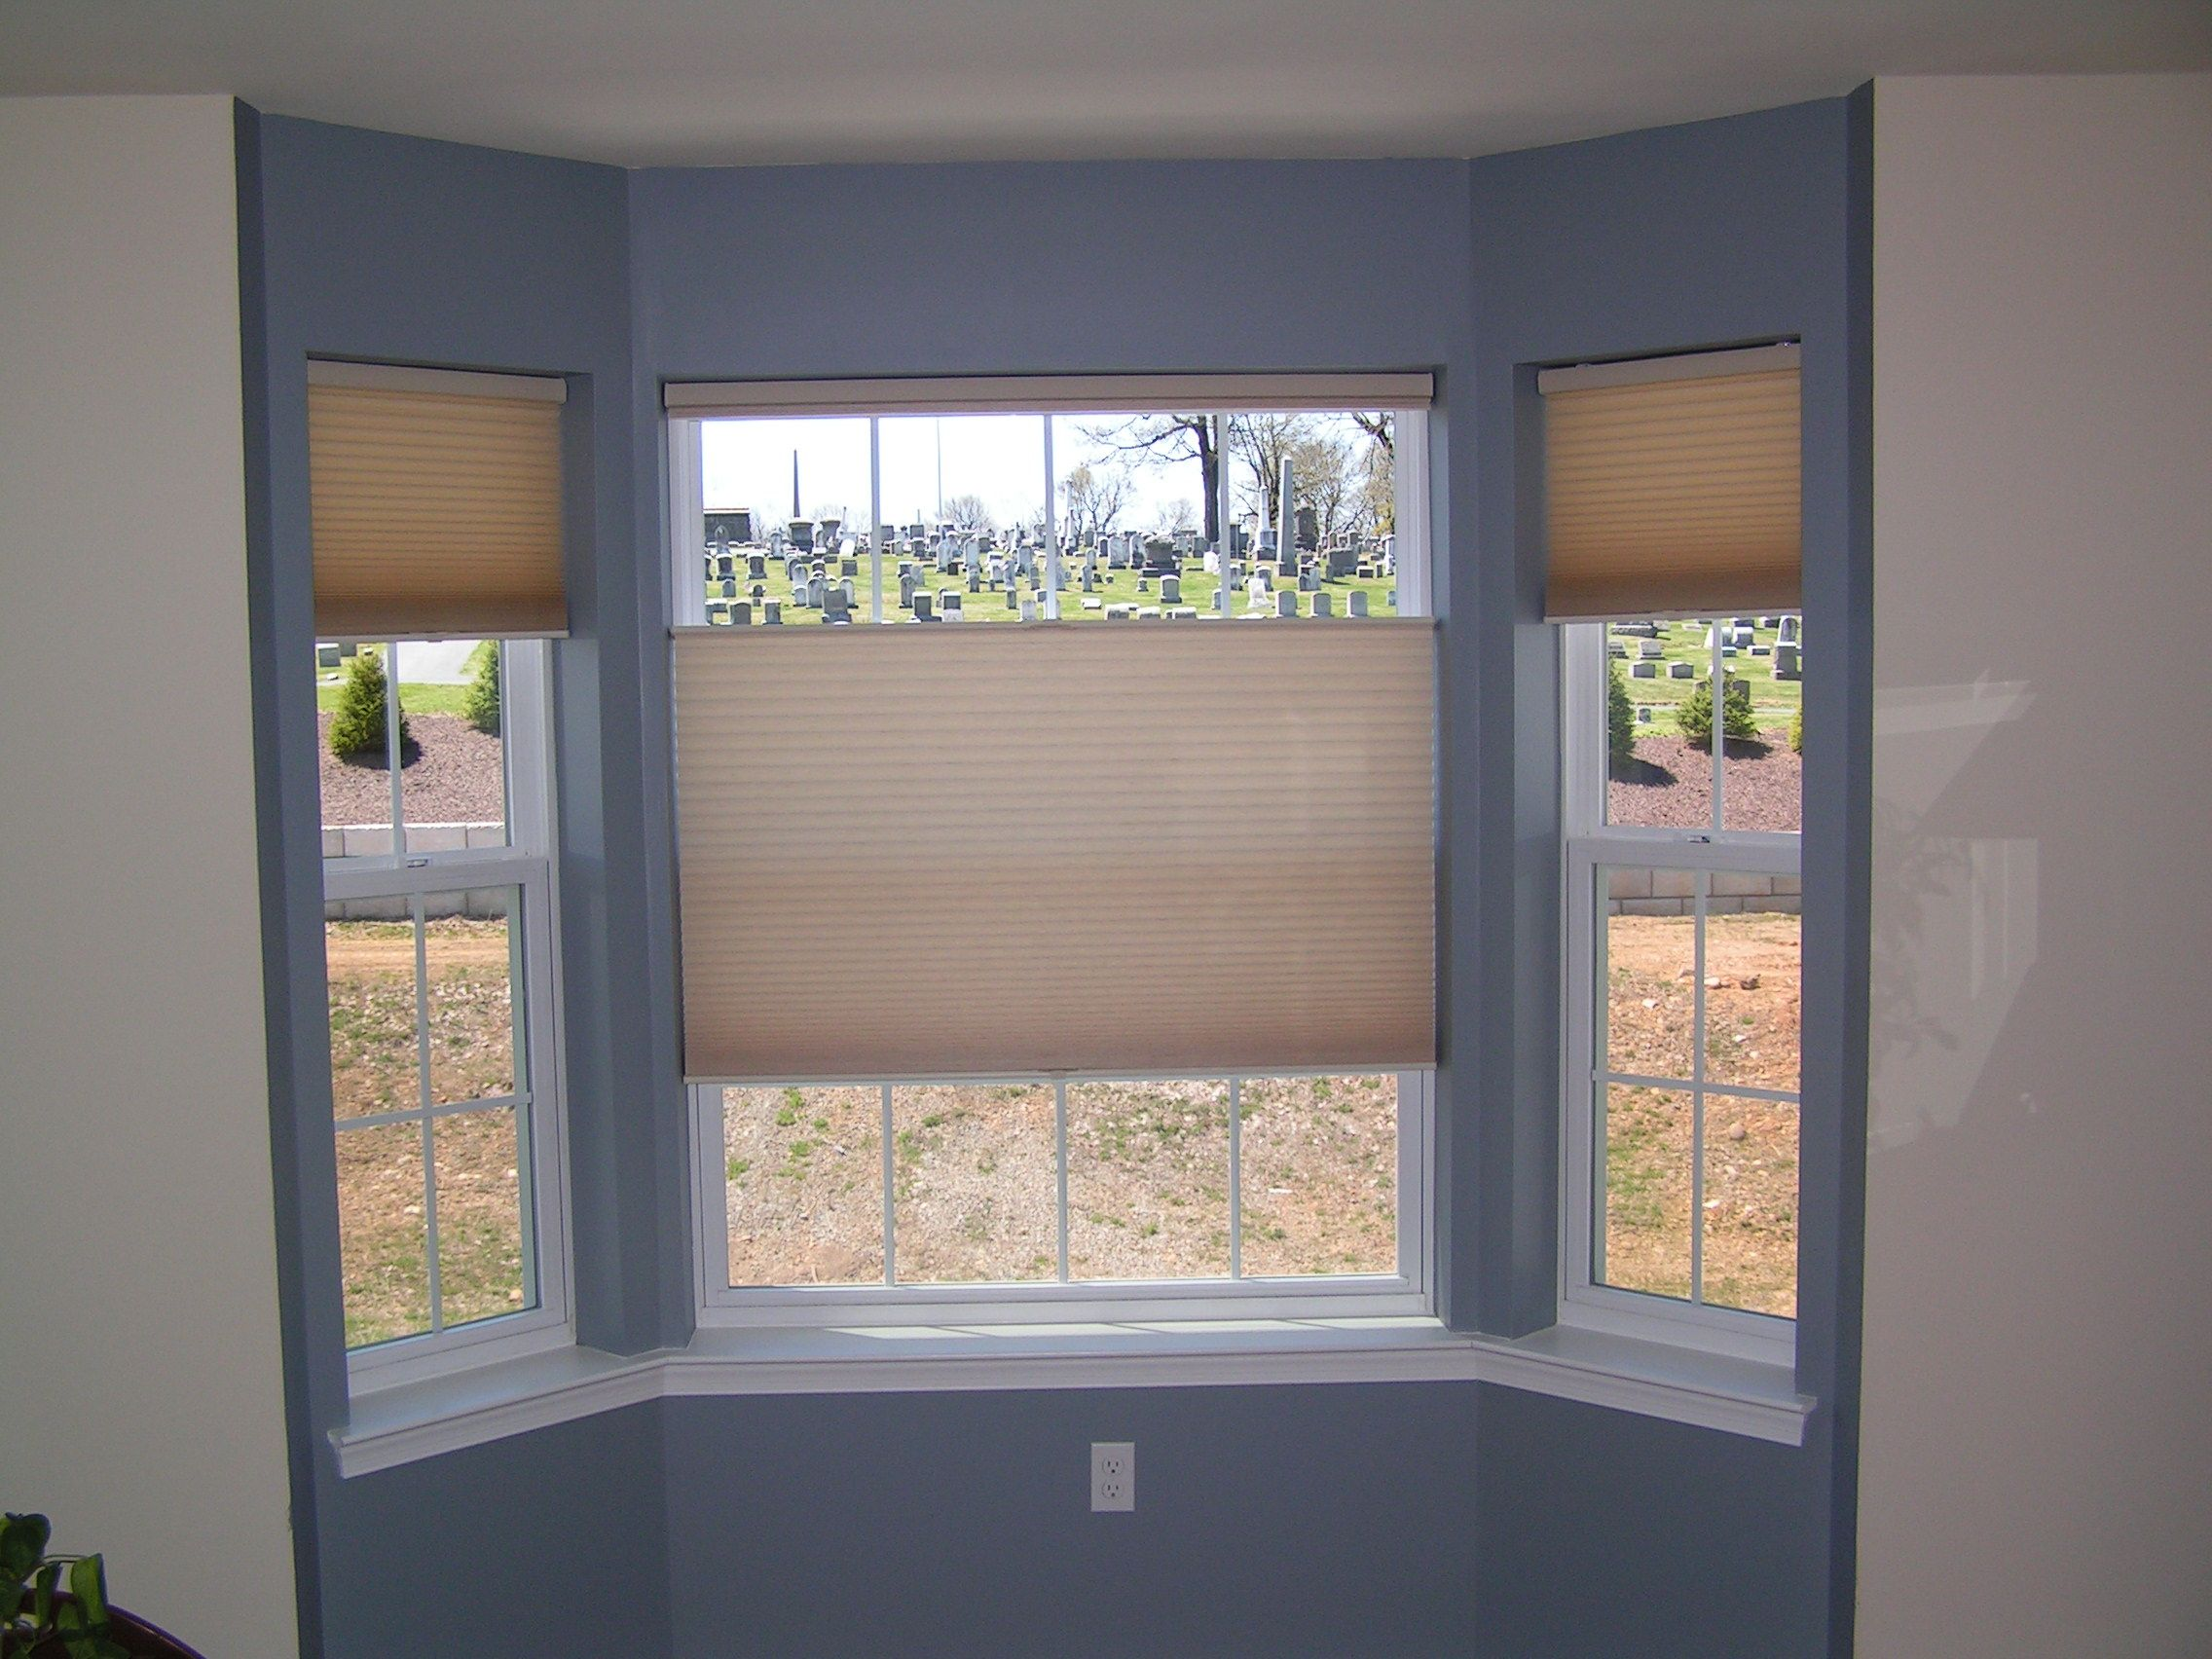 Duettes In A Walk Out Bay Window The Center Shade Is A Top Down Bottom Up Shade Bay Window Blinds Honeycomb Shades Bay Window